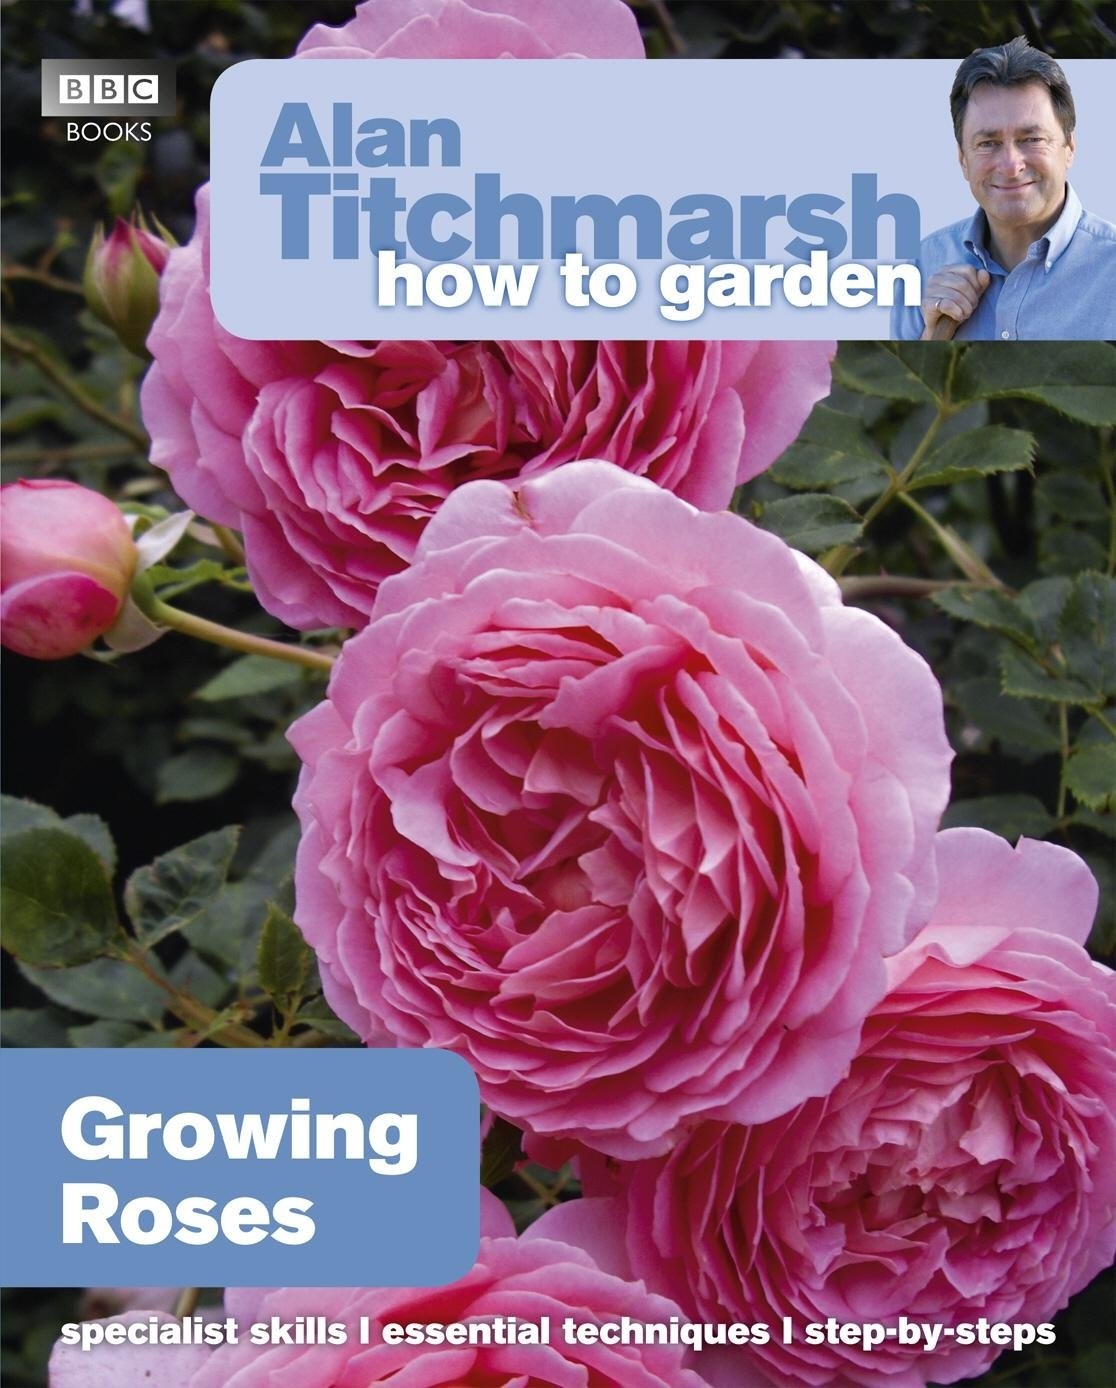 alan-titchmarsh-how-to-garden-growing-roses